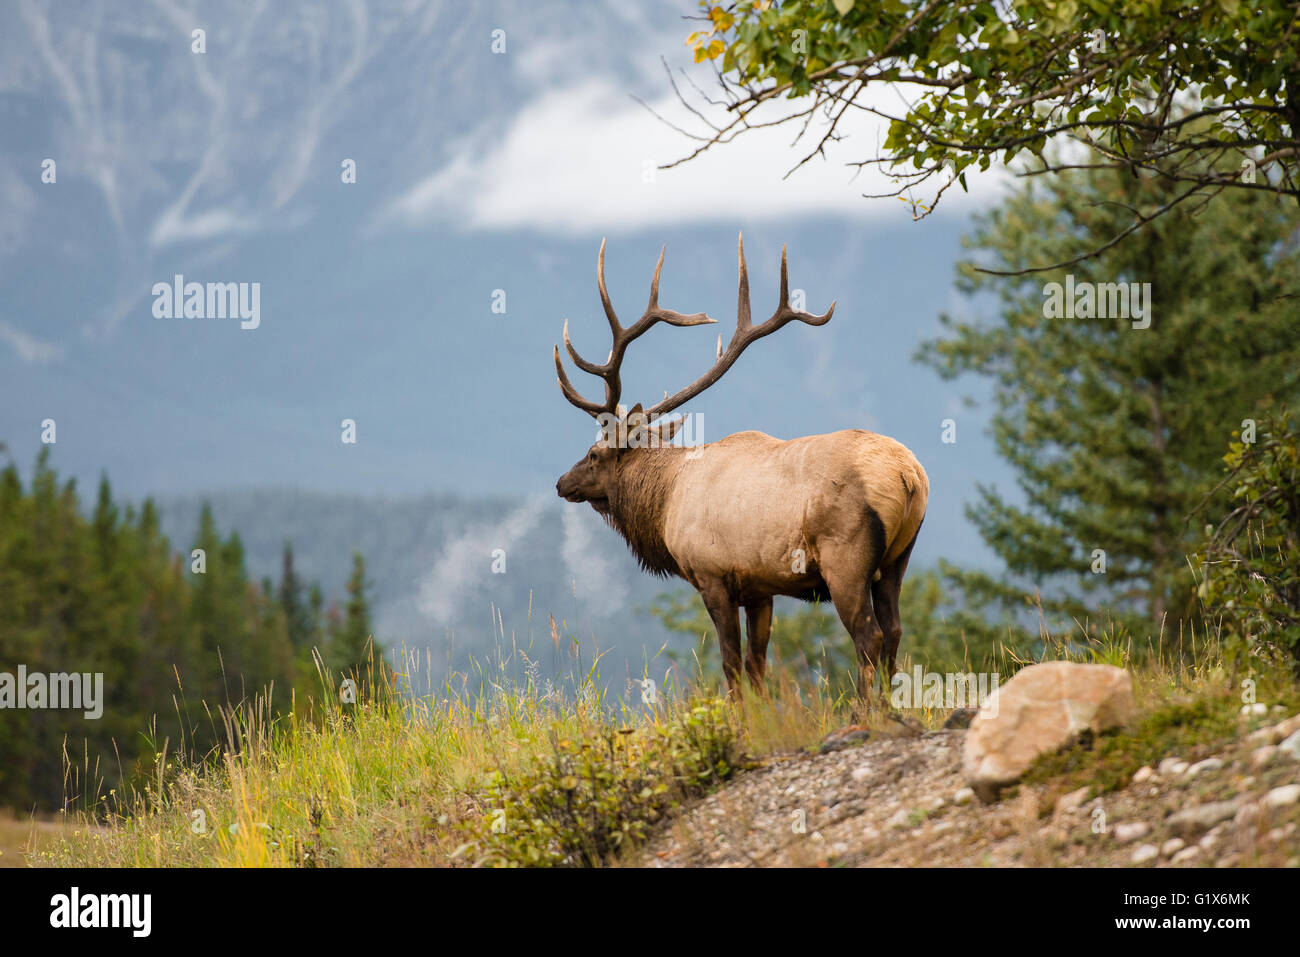 Wapiti, Elk (Cervus canadensis) looks into the distance, Deer, Banff National Park, Canadian Rockies, Alberta Province, - Stock Image